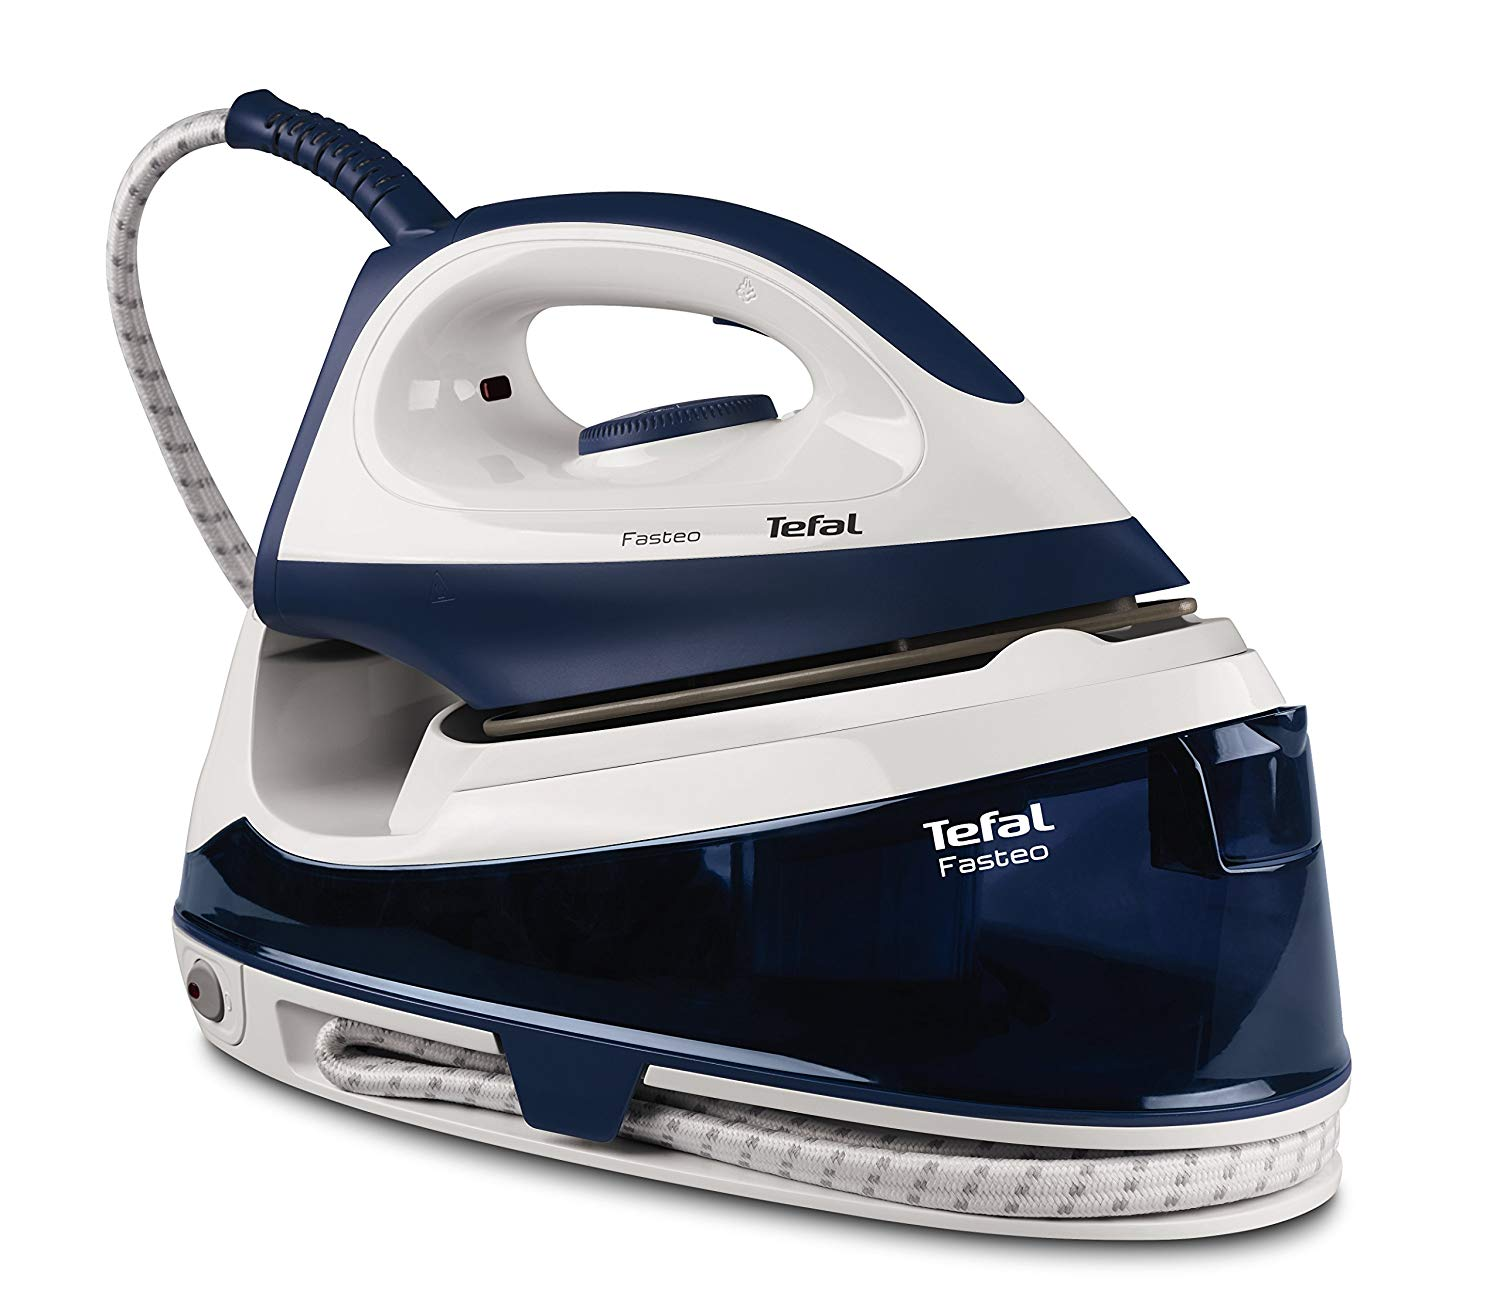 Tefal Fasteo Steam Generator Iron, 2200 W